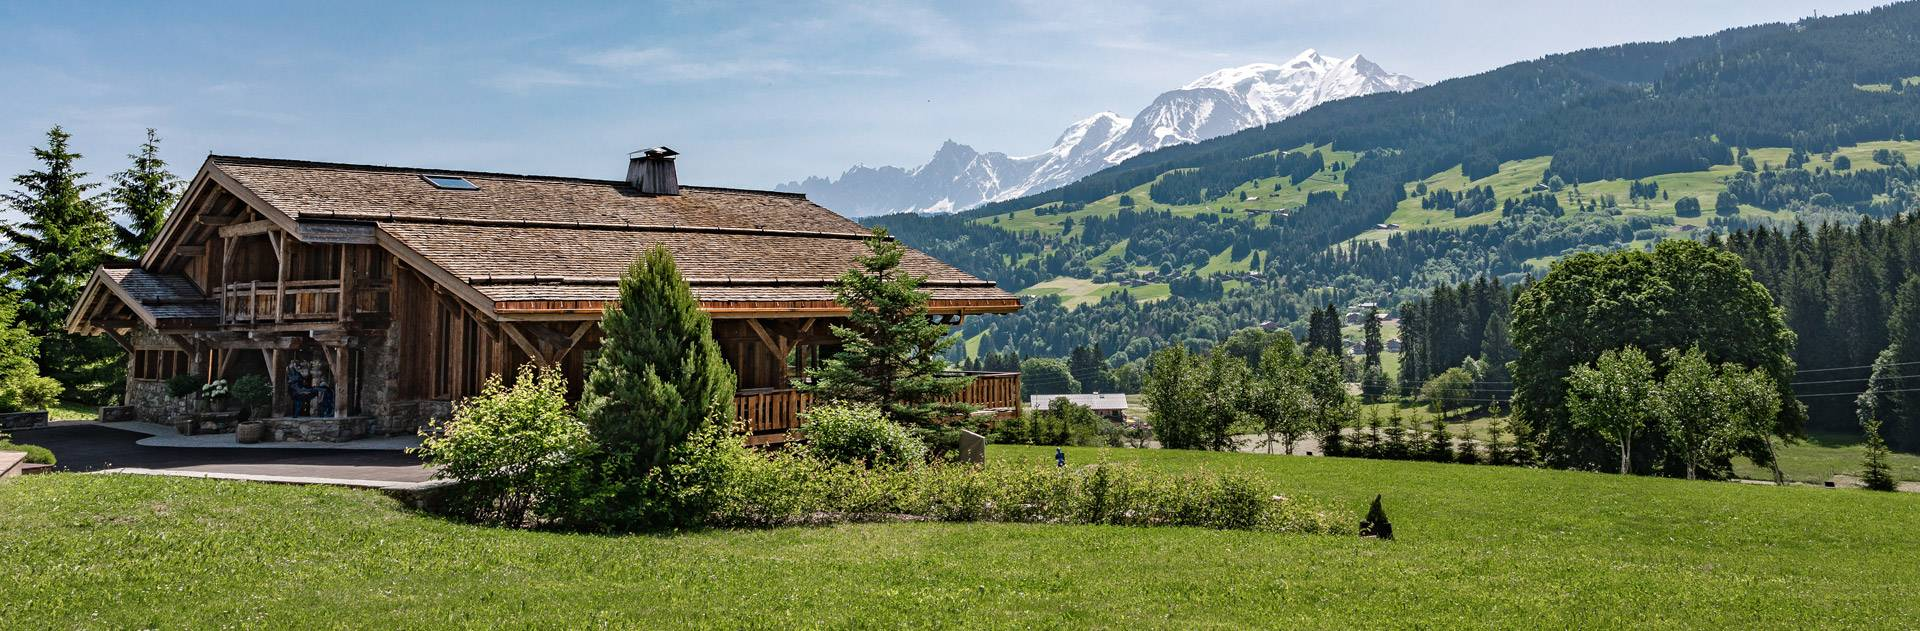 Luxury Heavens Chalet Goldenrod Megève 2